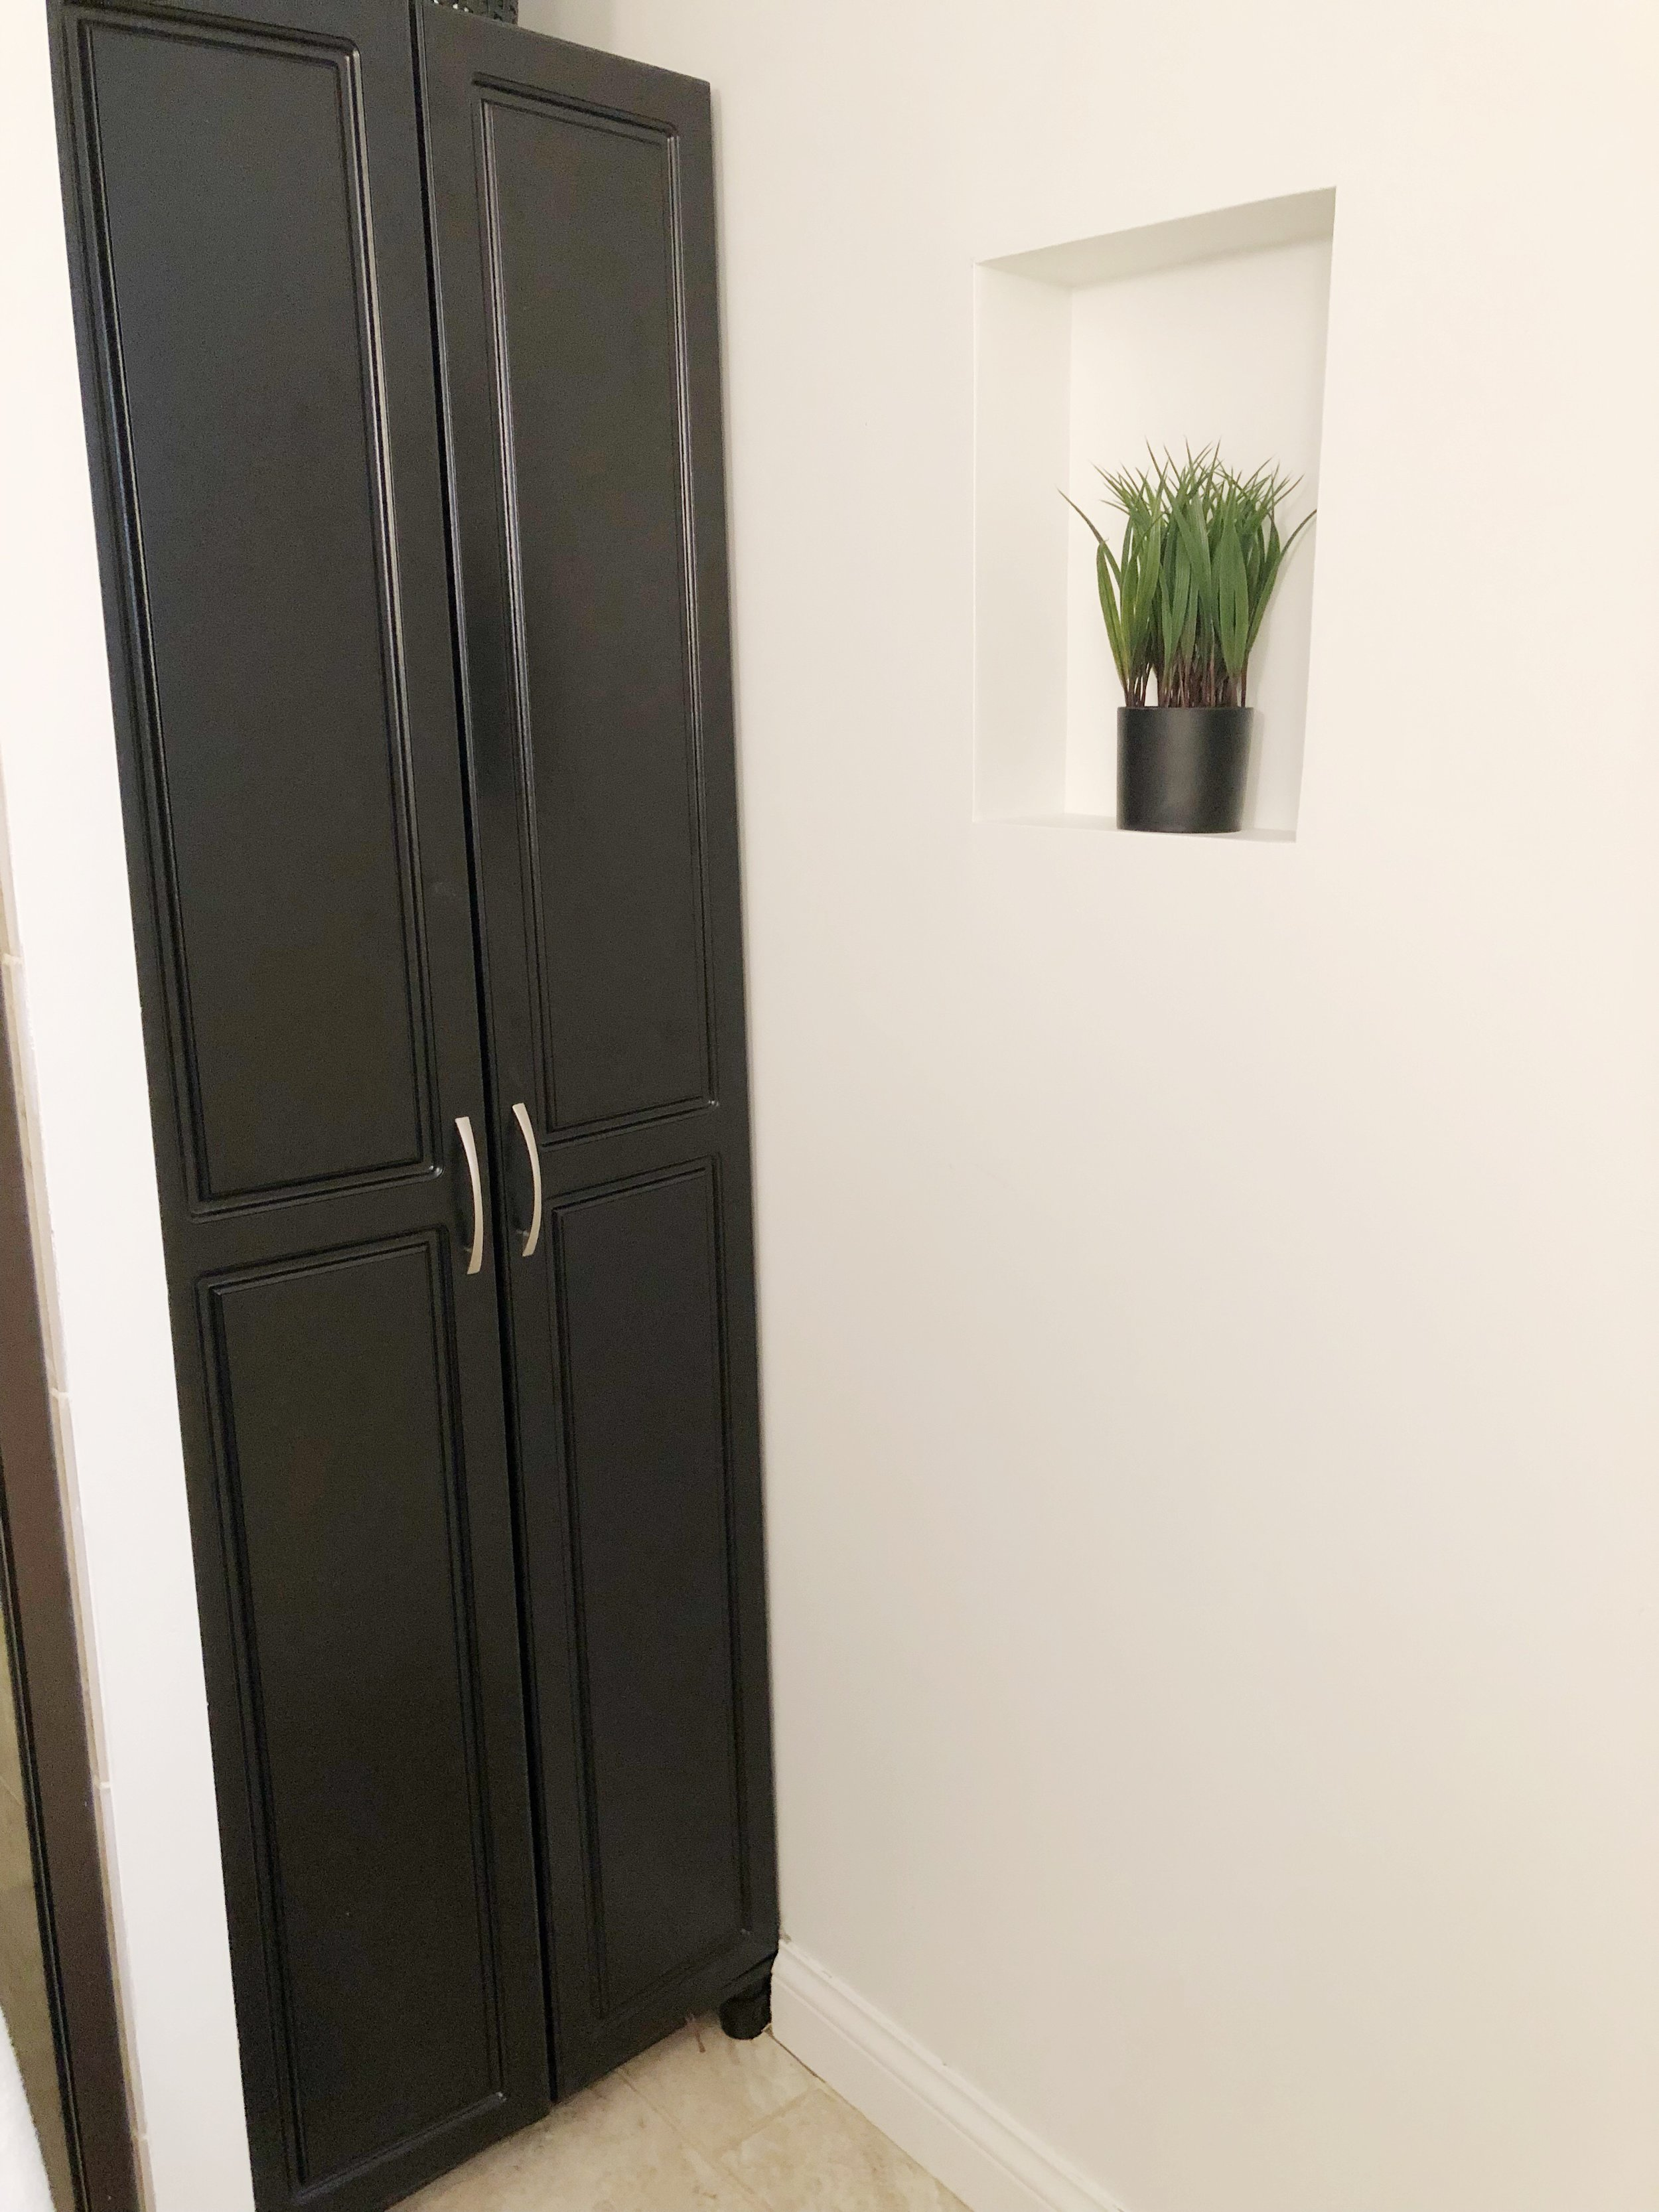 The Scholl cabinet from Birch Lane fit our narrow space perfectly.